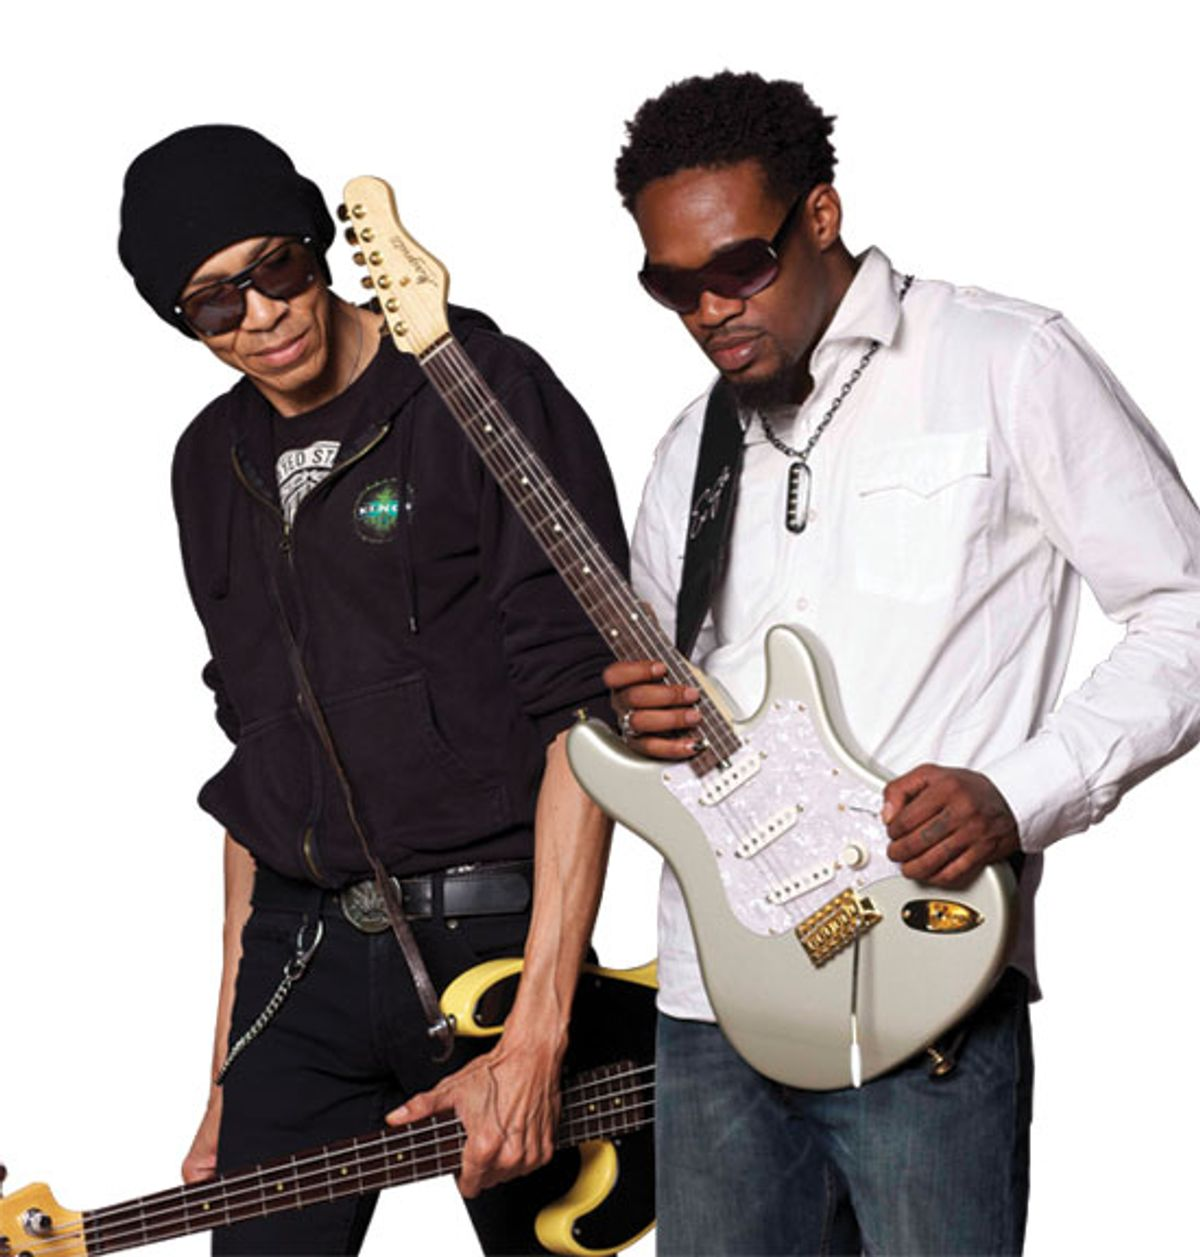 Interview: Eric Gales & Doug Pinnick - Gospel Grooves & Abnormal Blues